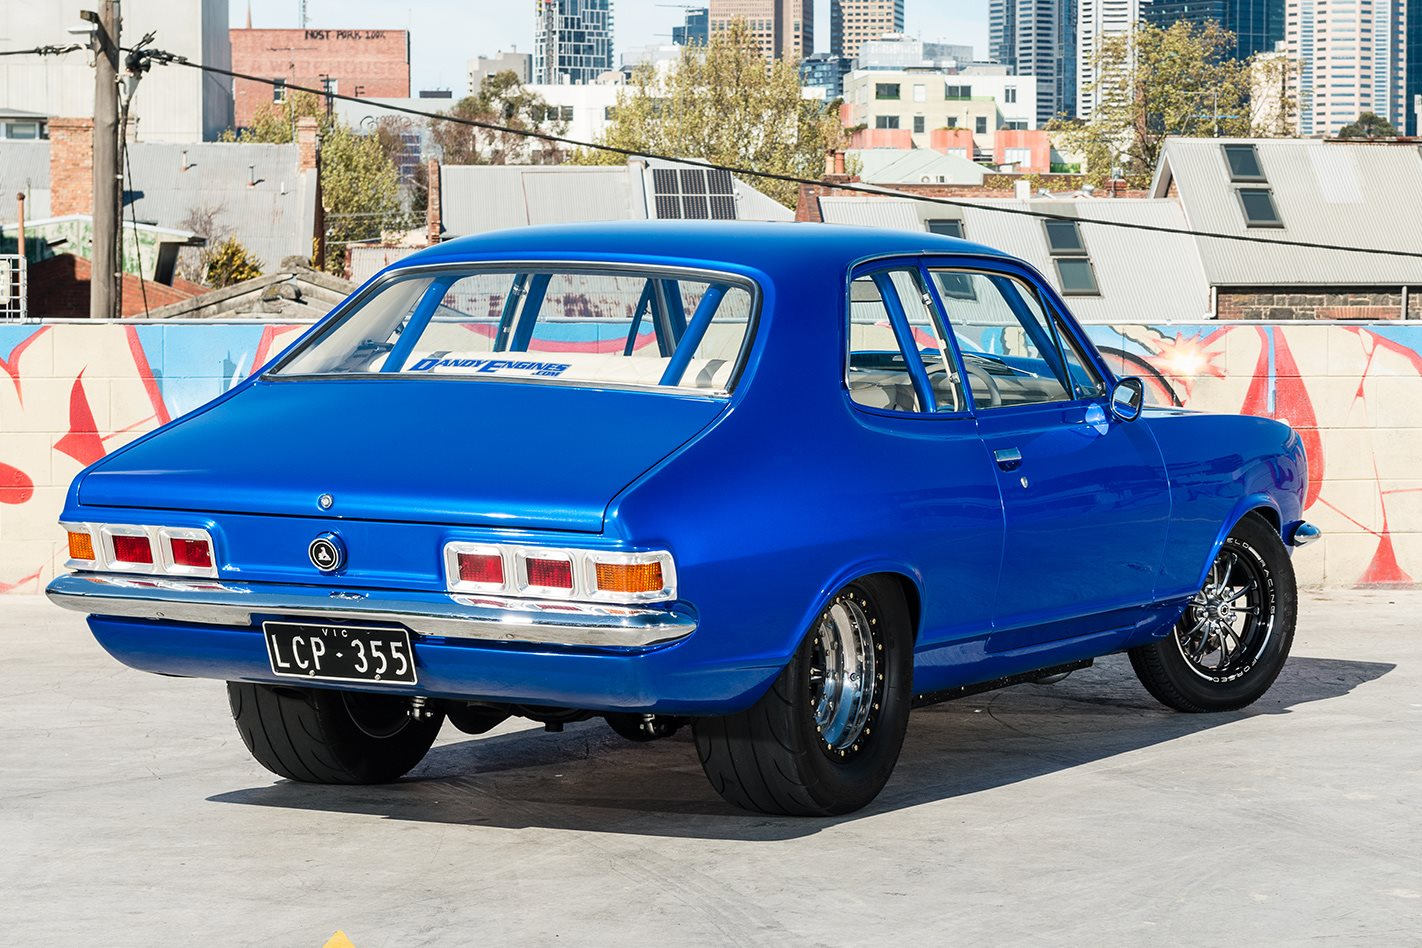 Holden LJ Torana rear